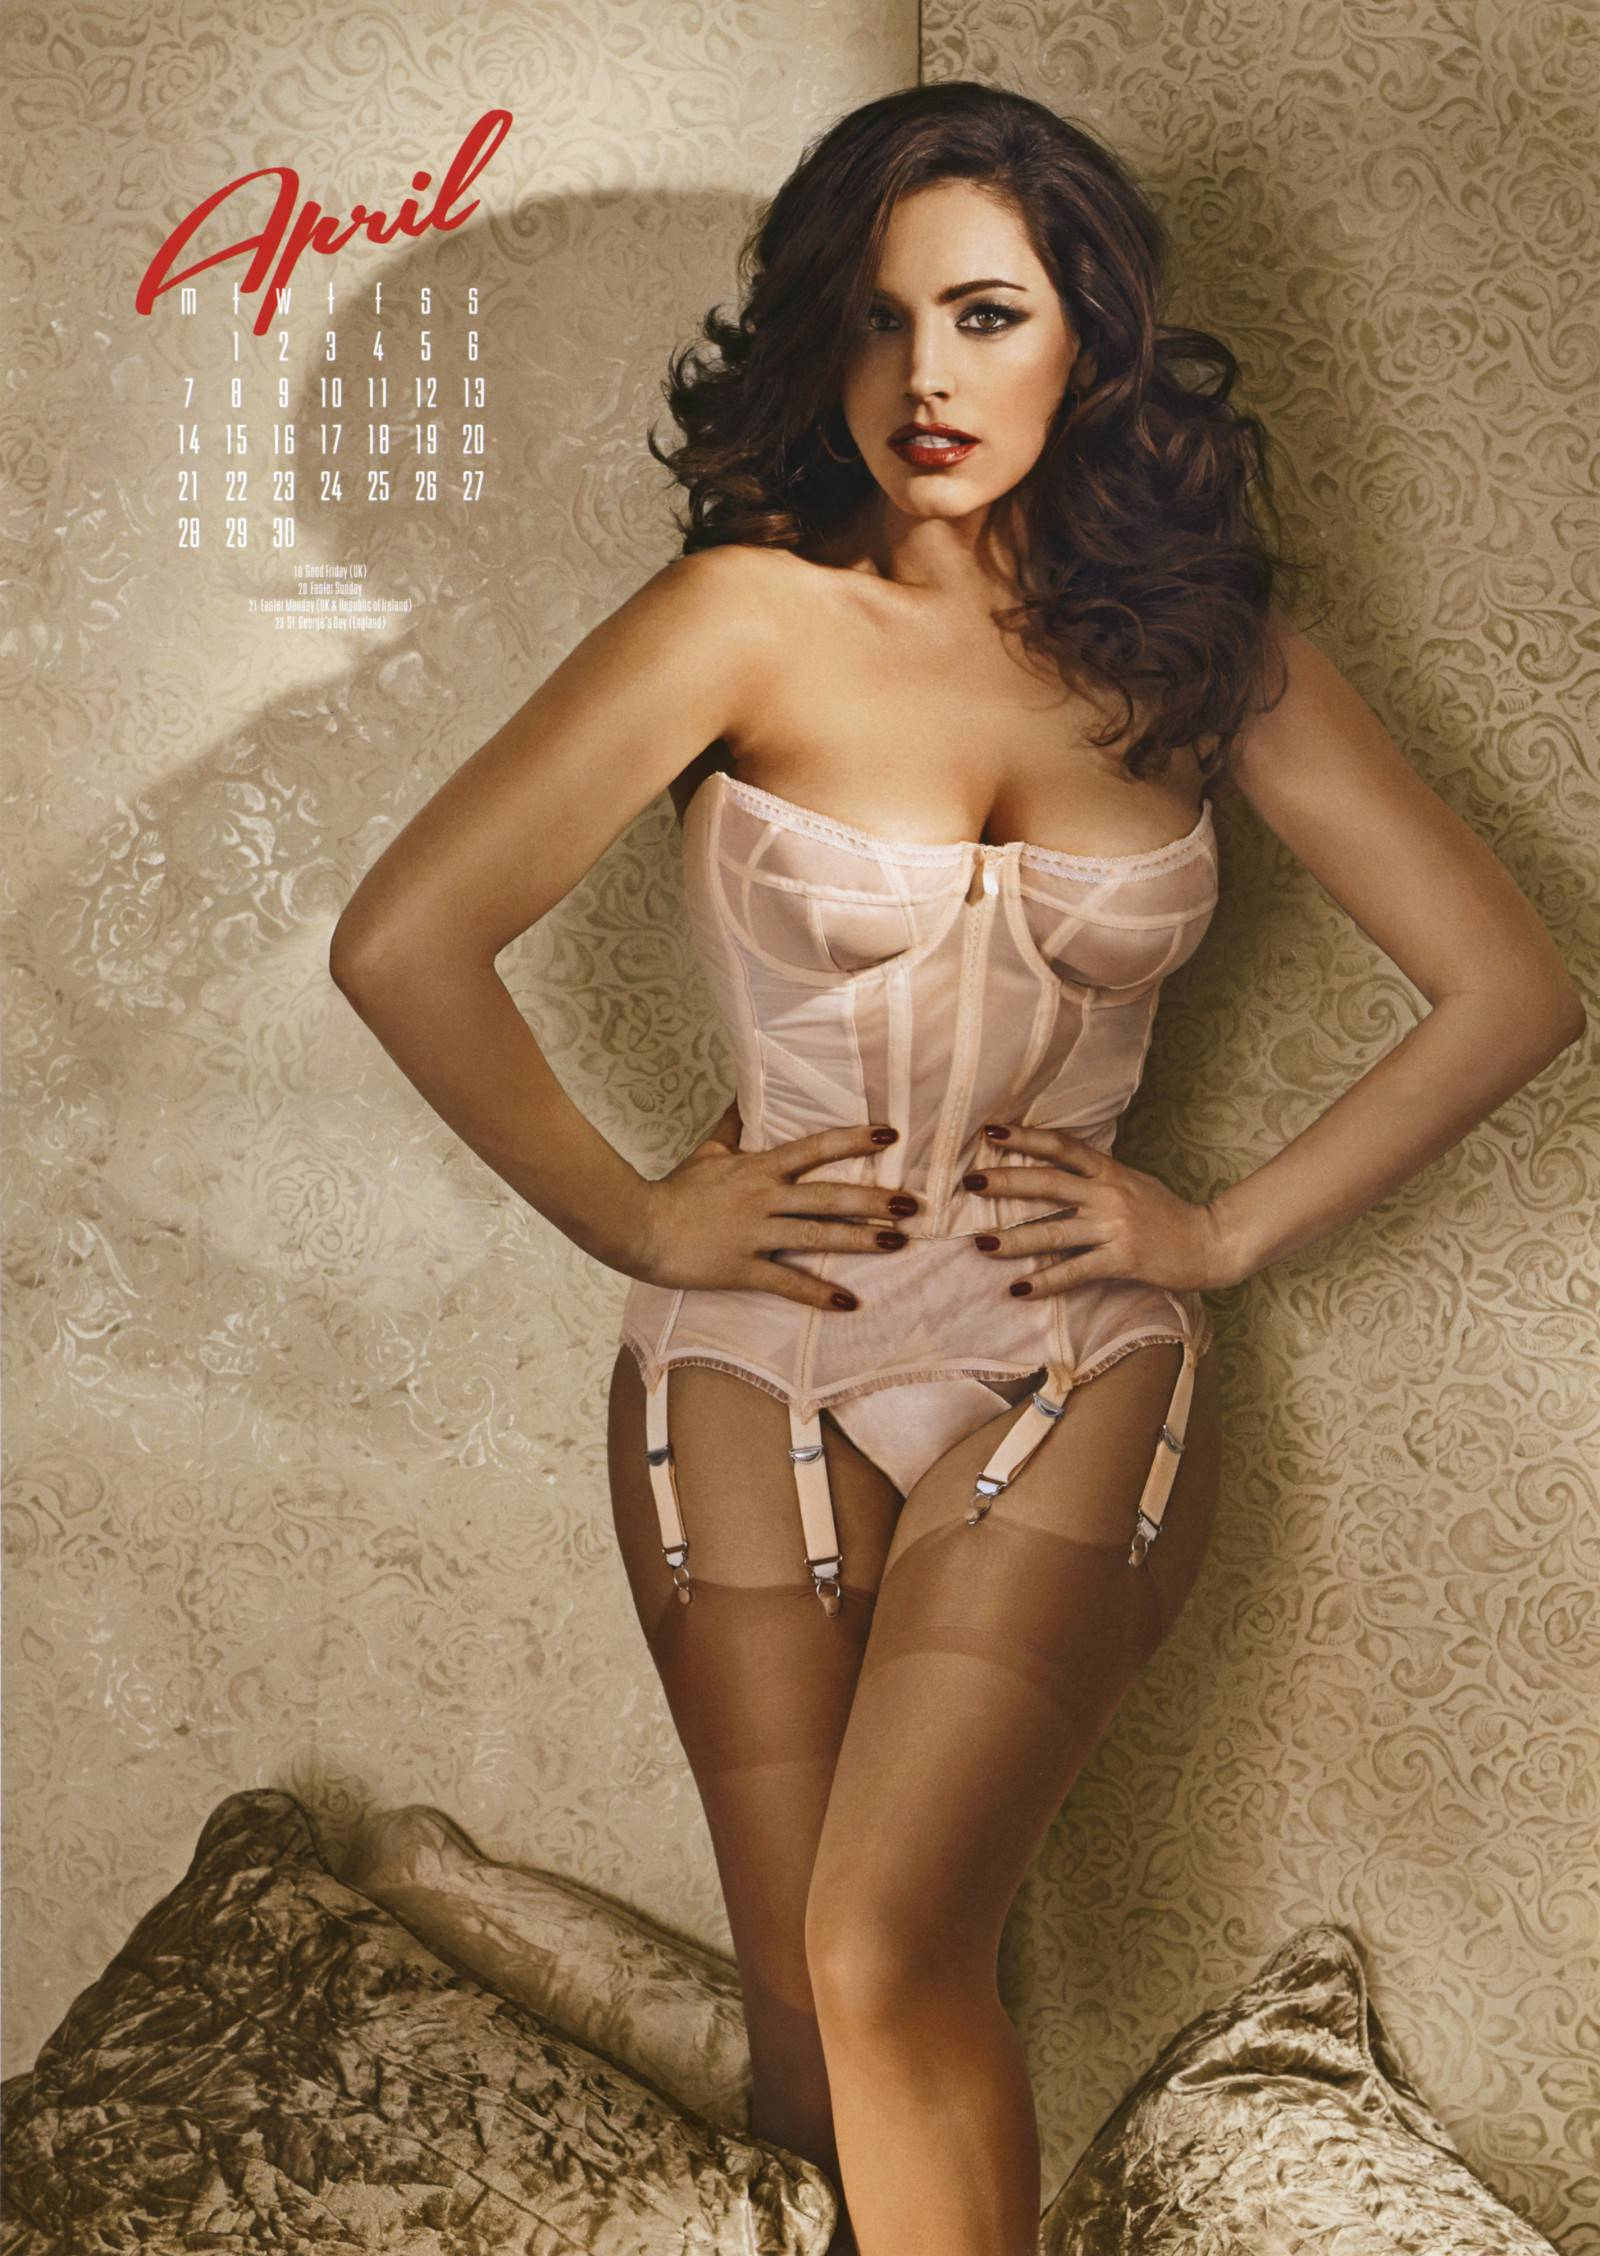 Kelly-Brook-2014-calendar-2